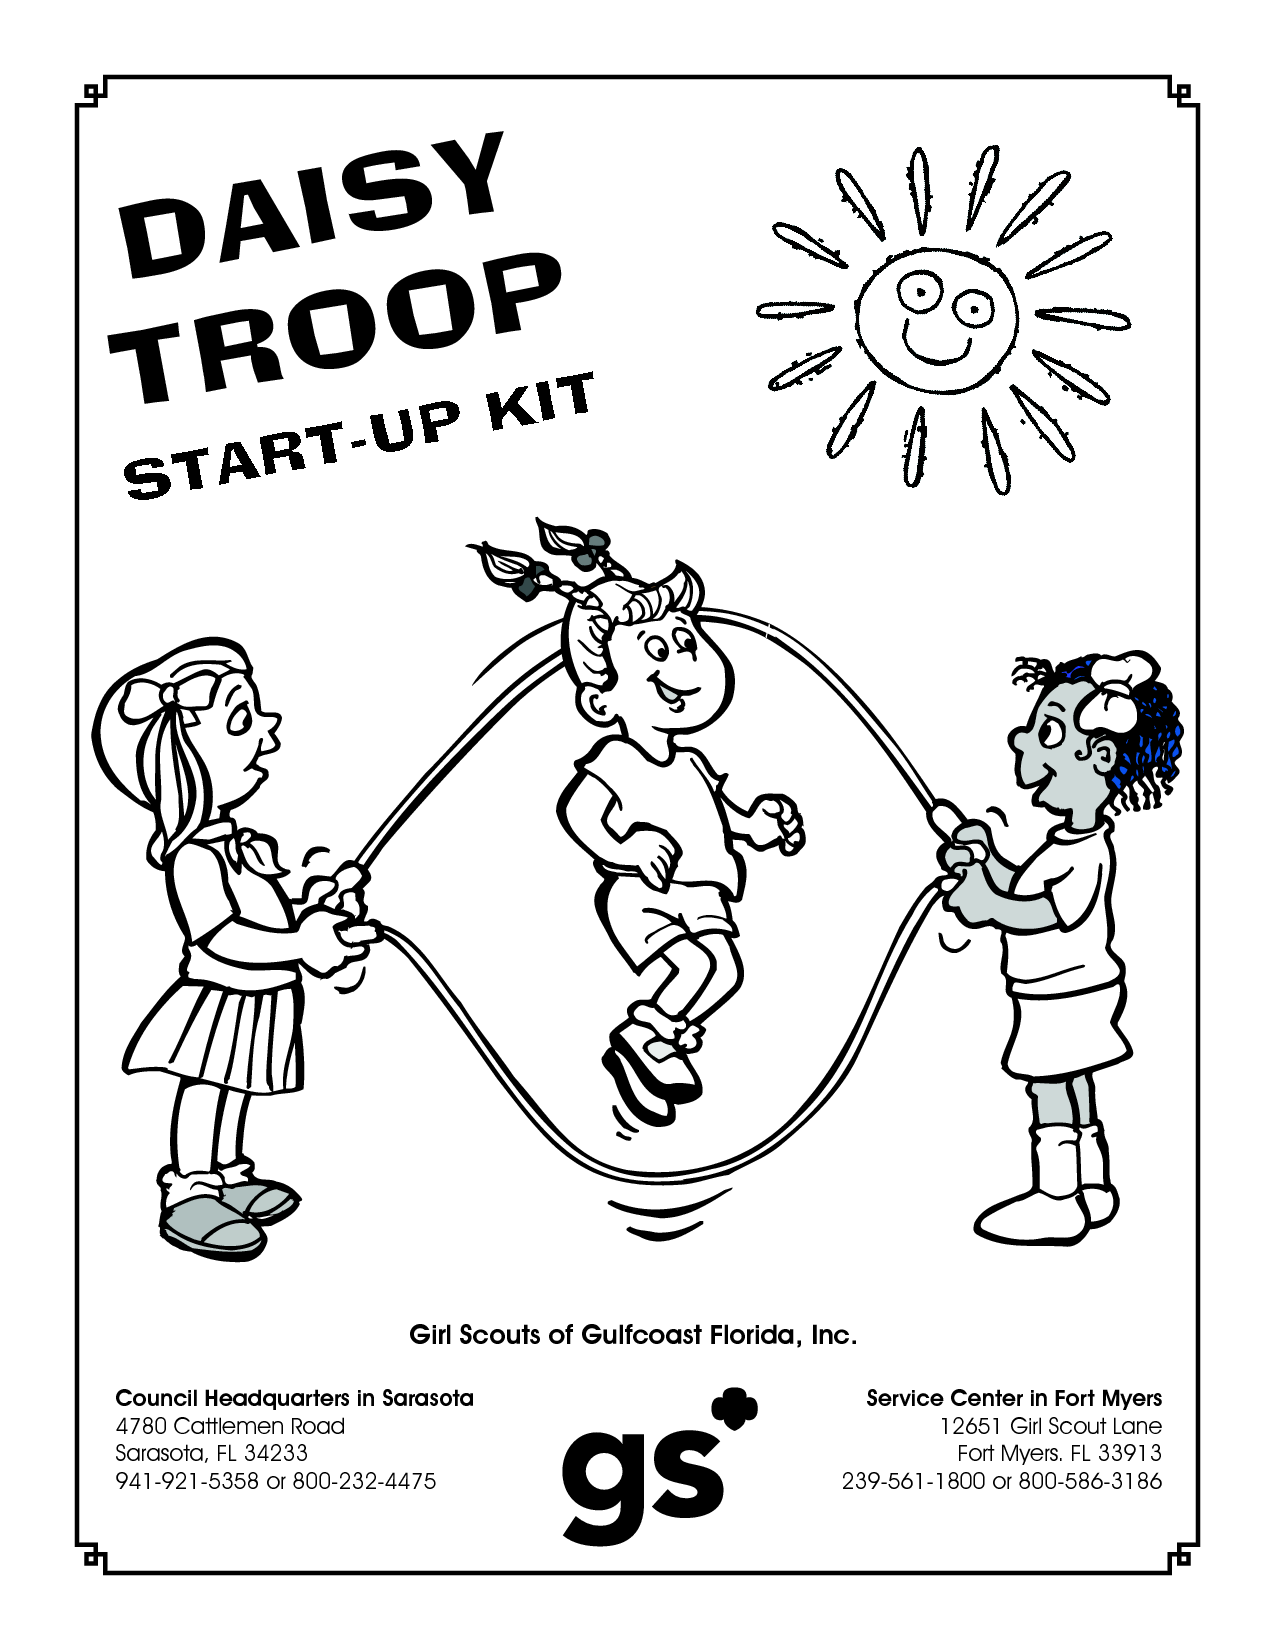 1275x1650 Daisy Troop Startup Kit. This Is Awesome! Wish I Had Seen This 4